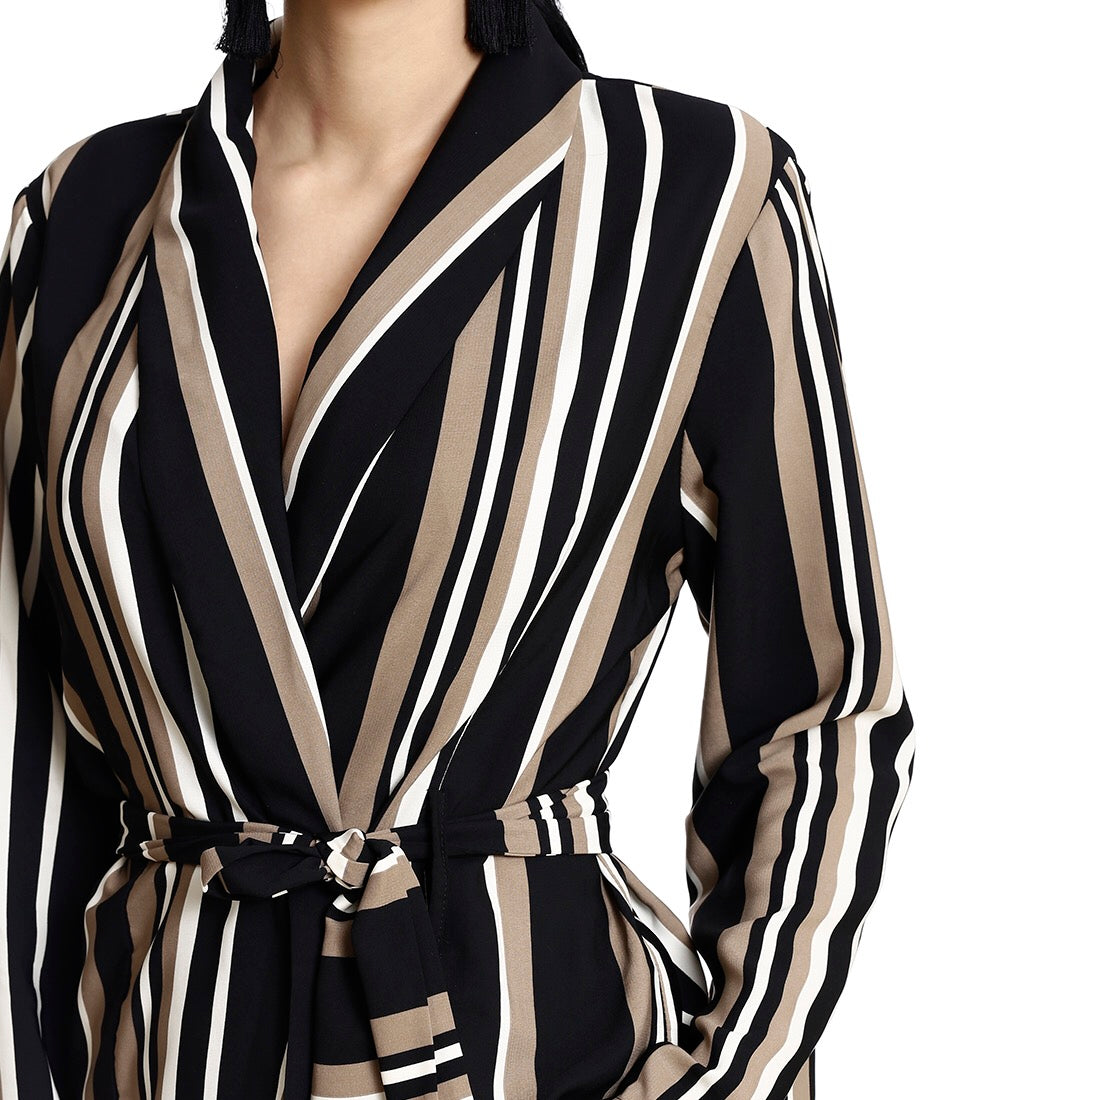 Striped Pantsuit Jacket ( beige- black- white)